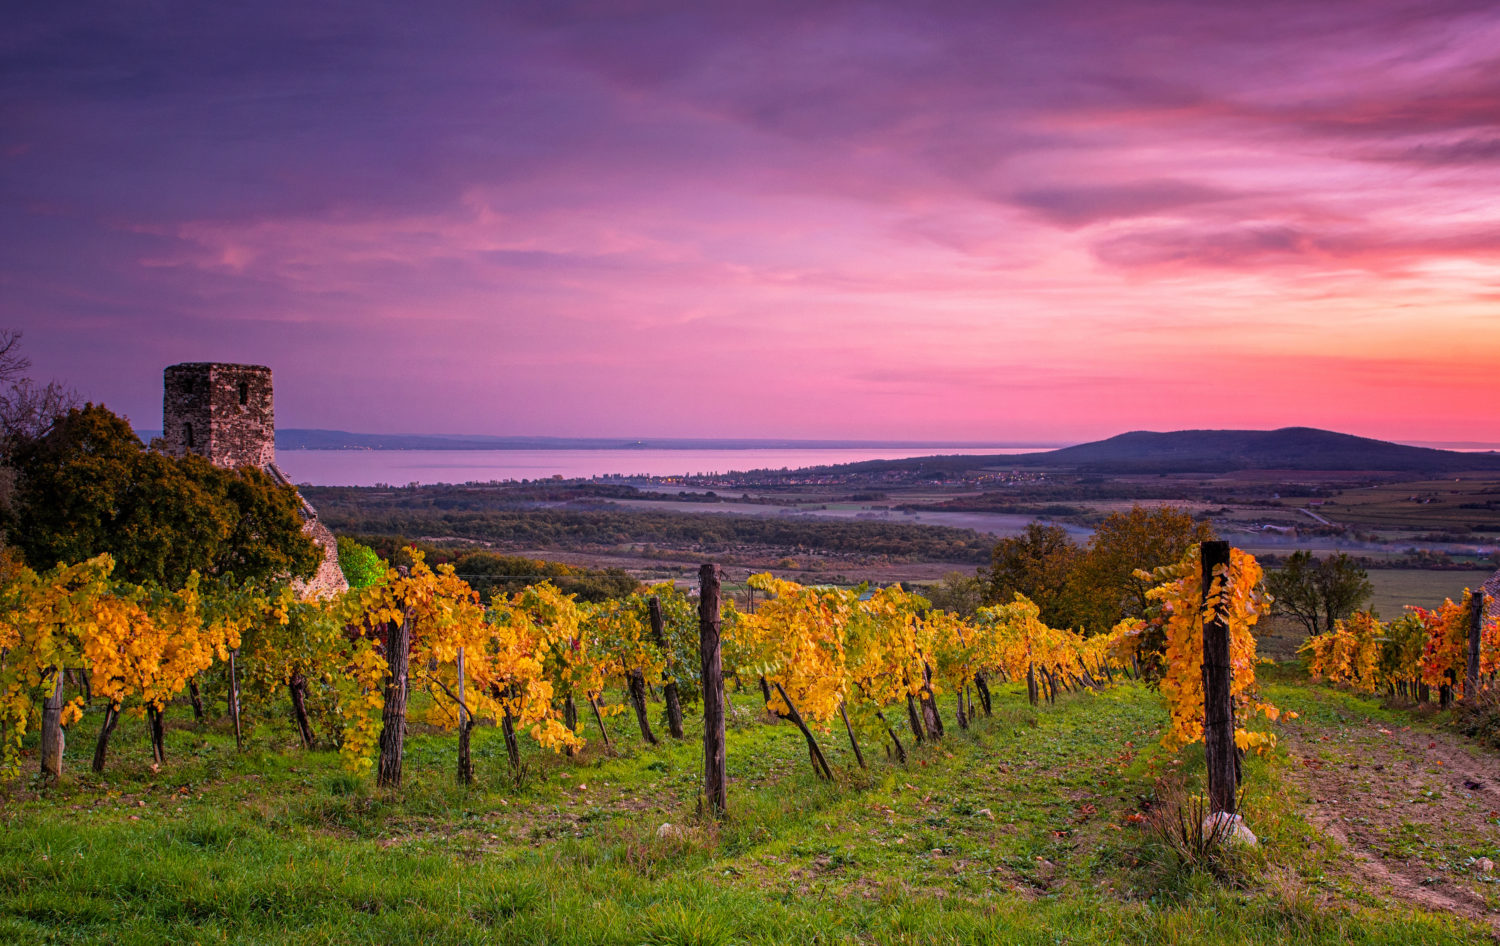 sunset over vineyards at lake Balaton, Hungary